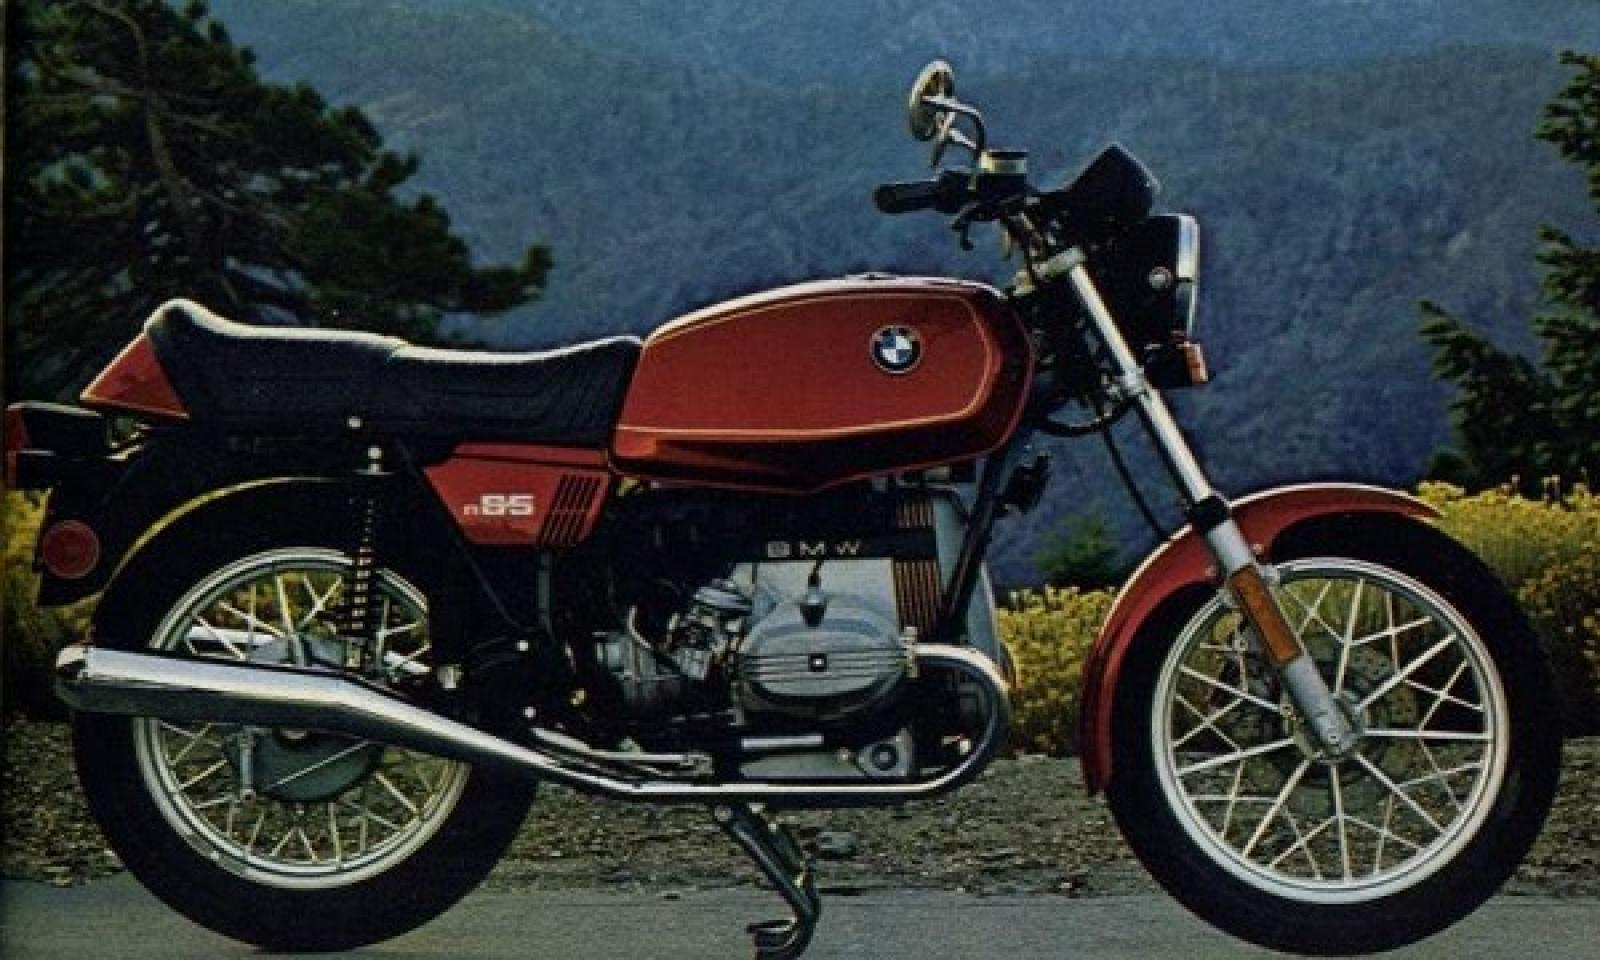 BMW R45 (reduced effect) 1984 images #154548